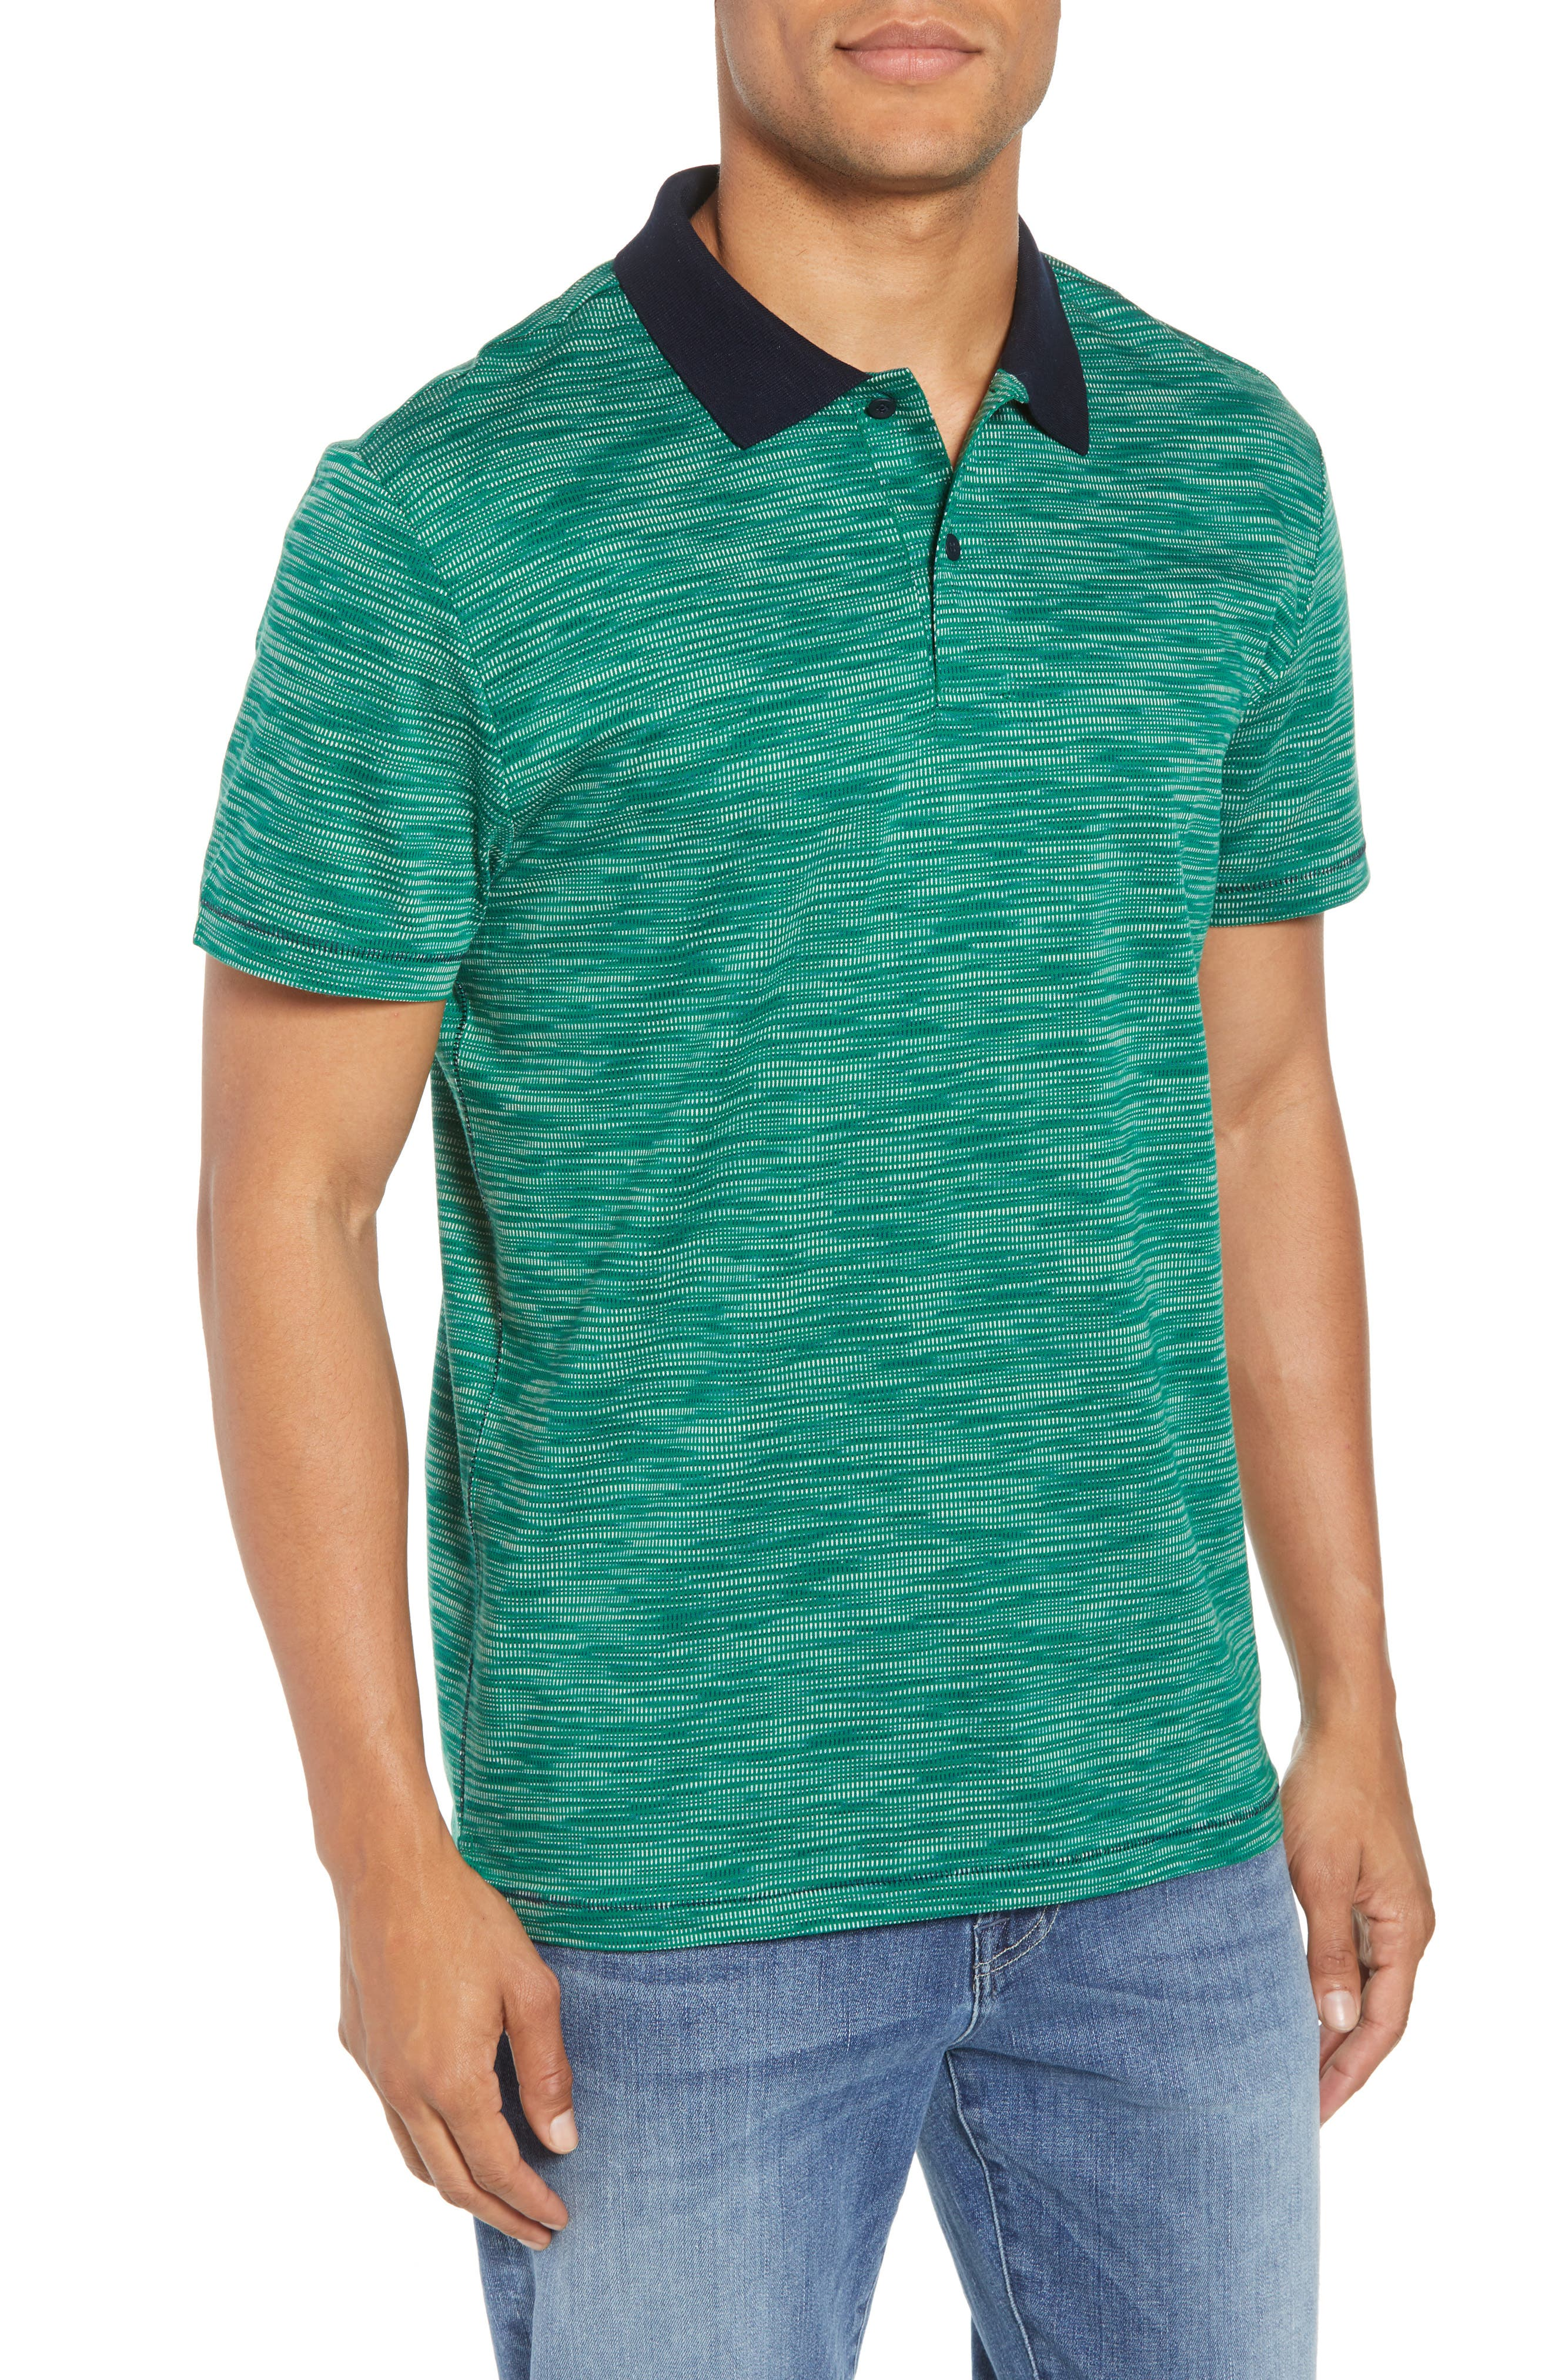 Tay Street Regular Fit Polo,                         Main,                         color, 341